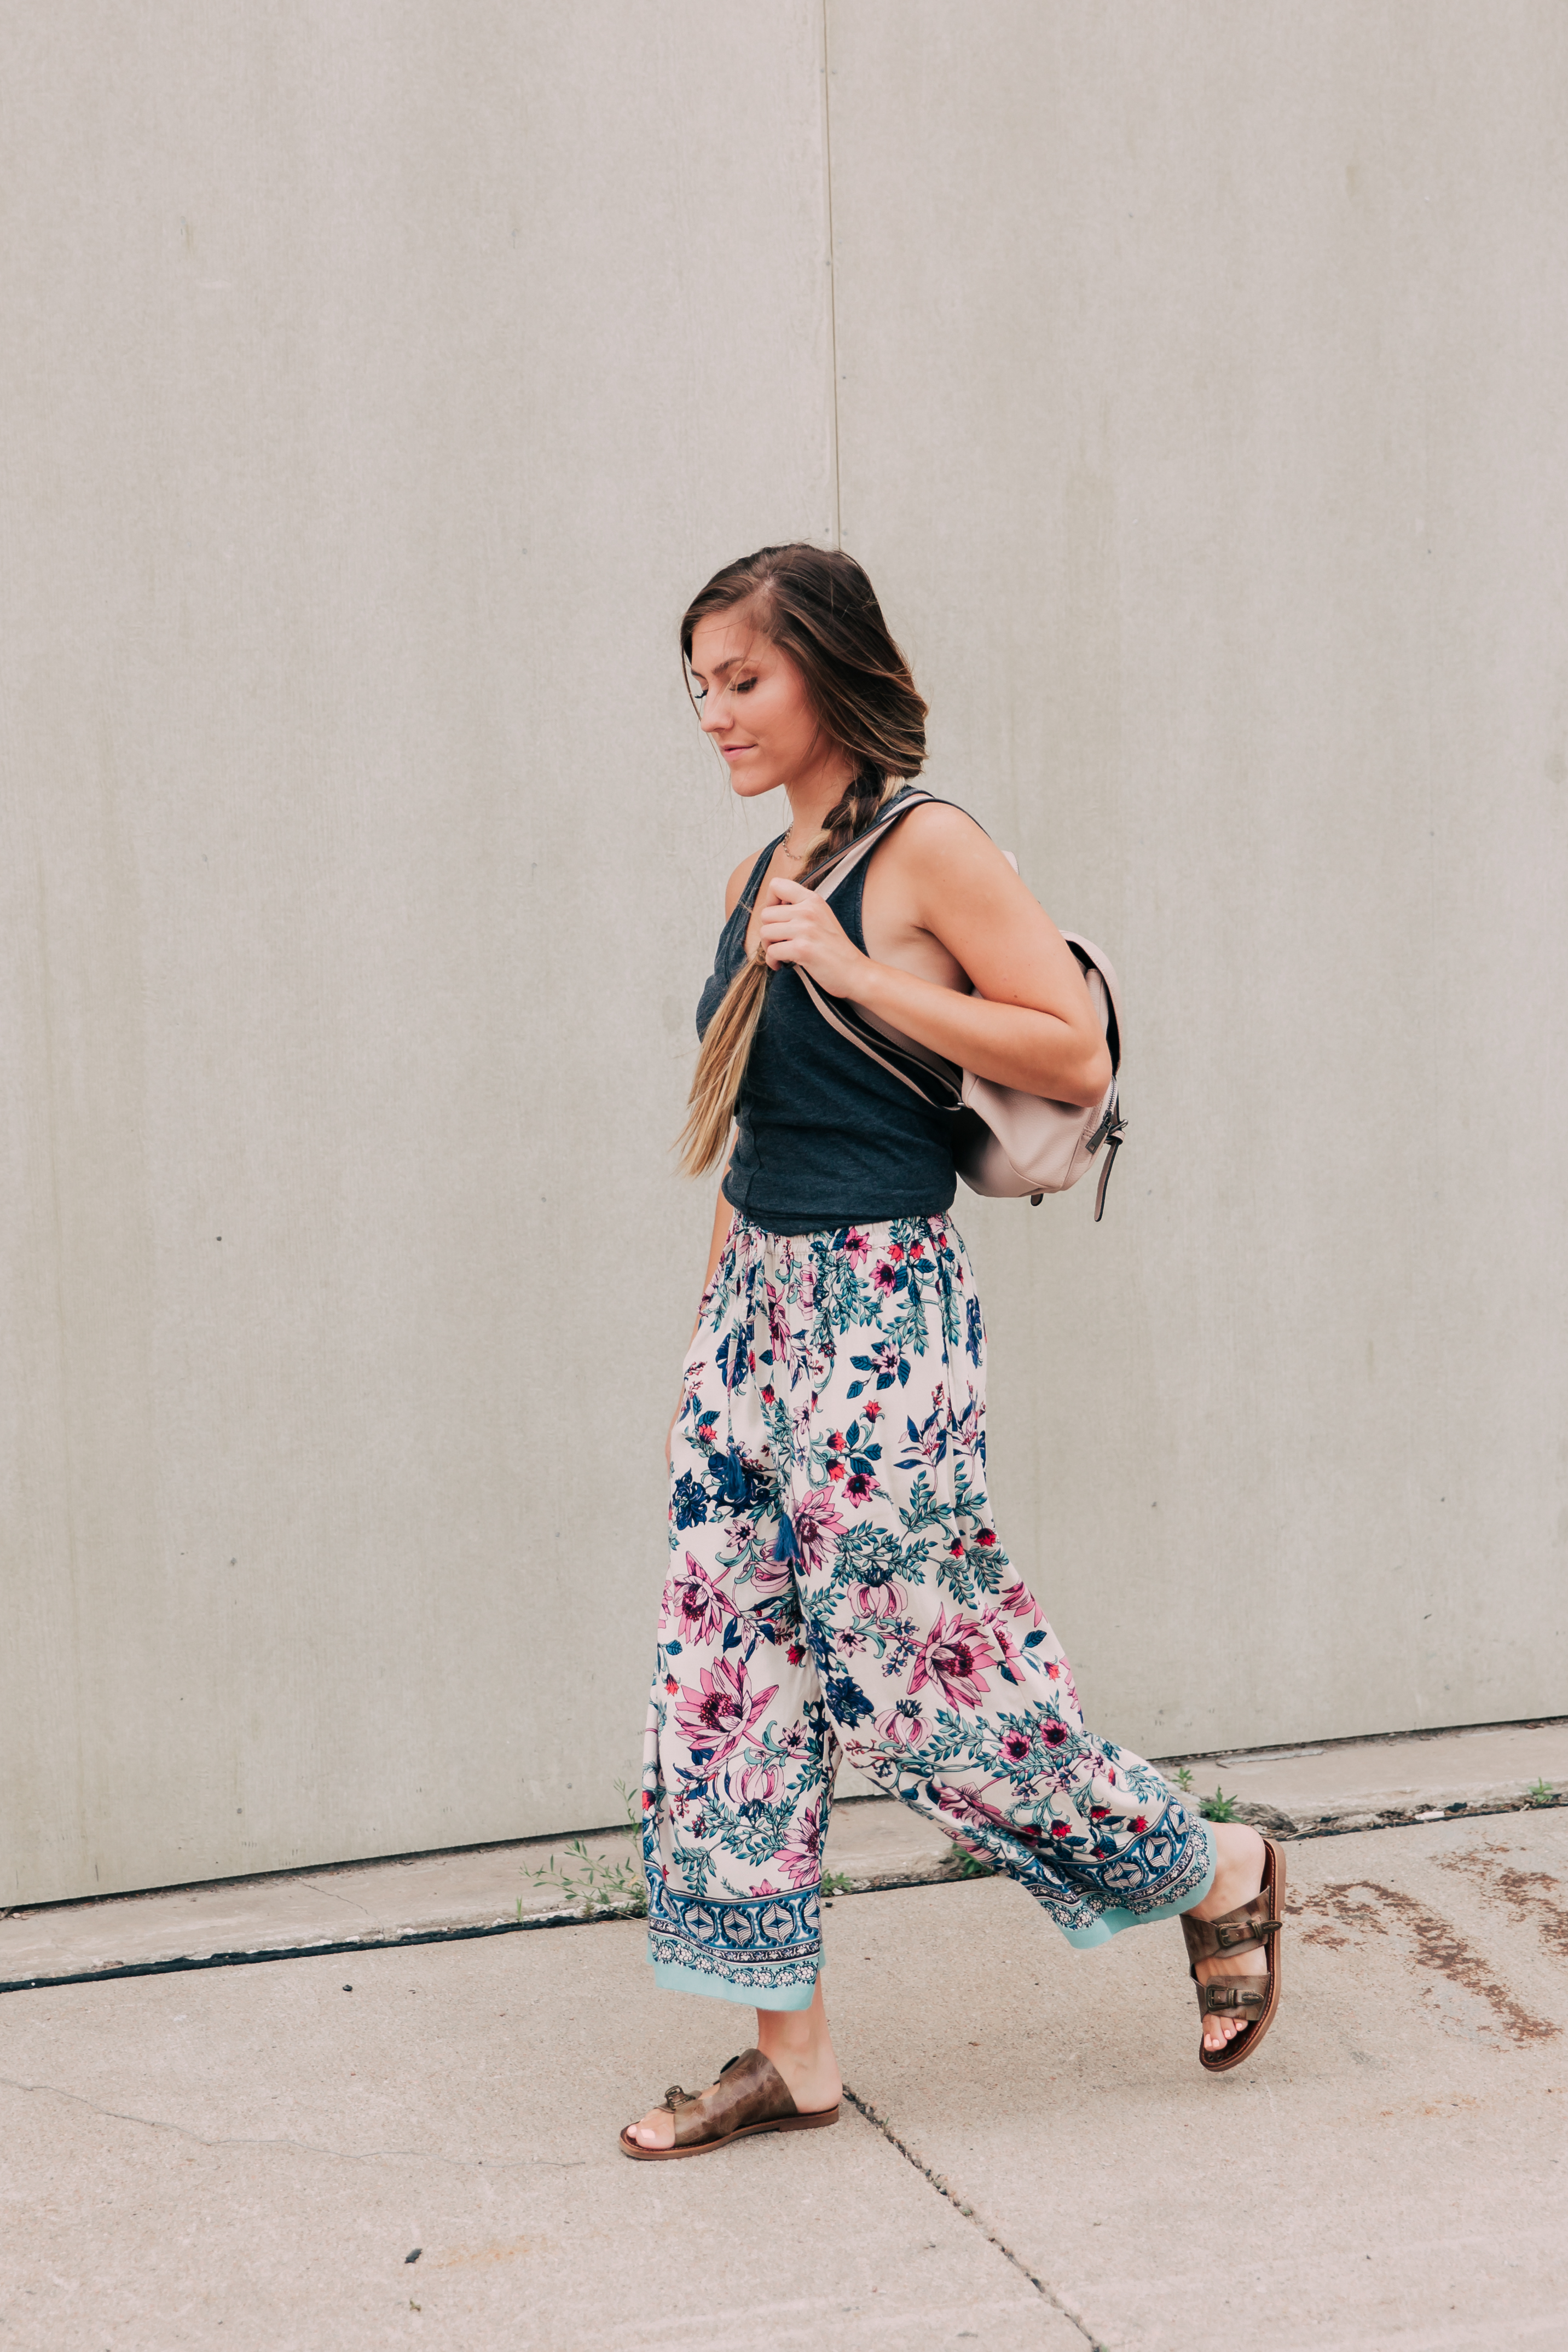 Casual floral fashion pants outfit to wear to class in college.